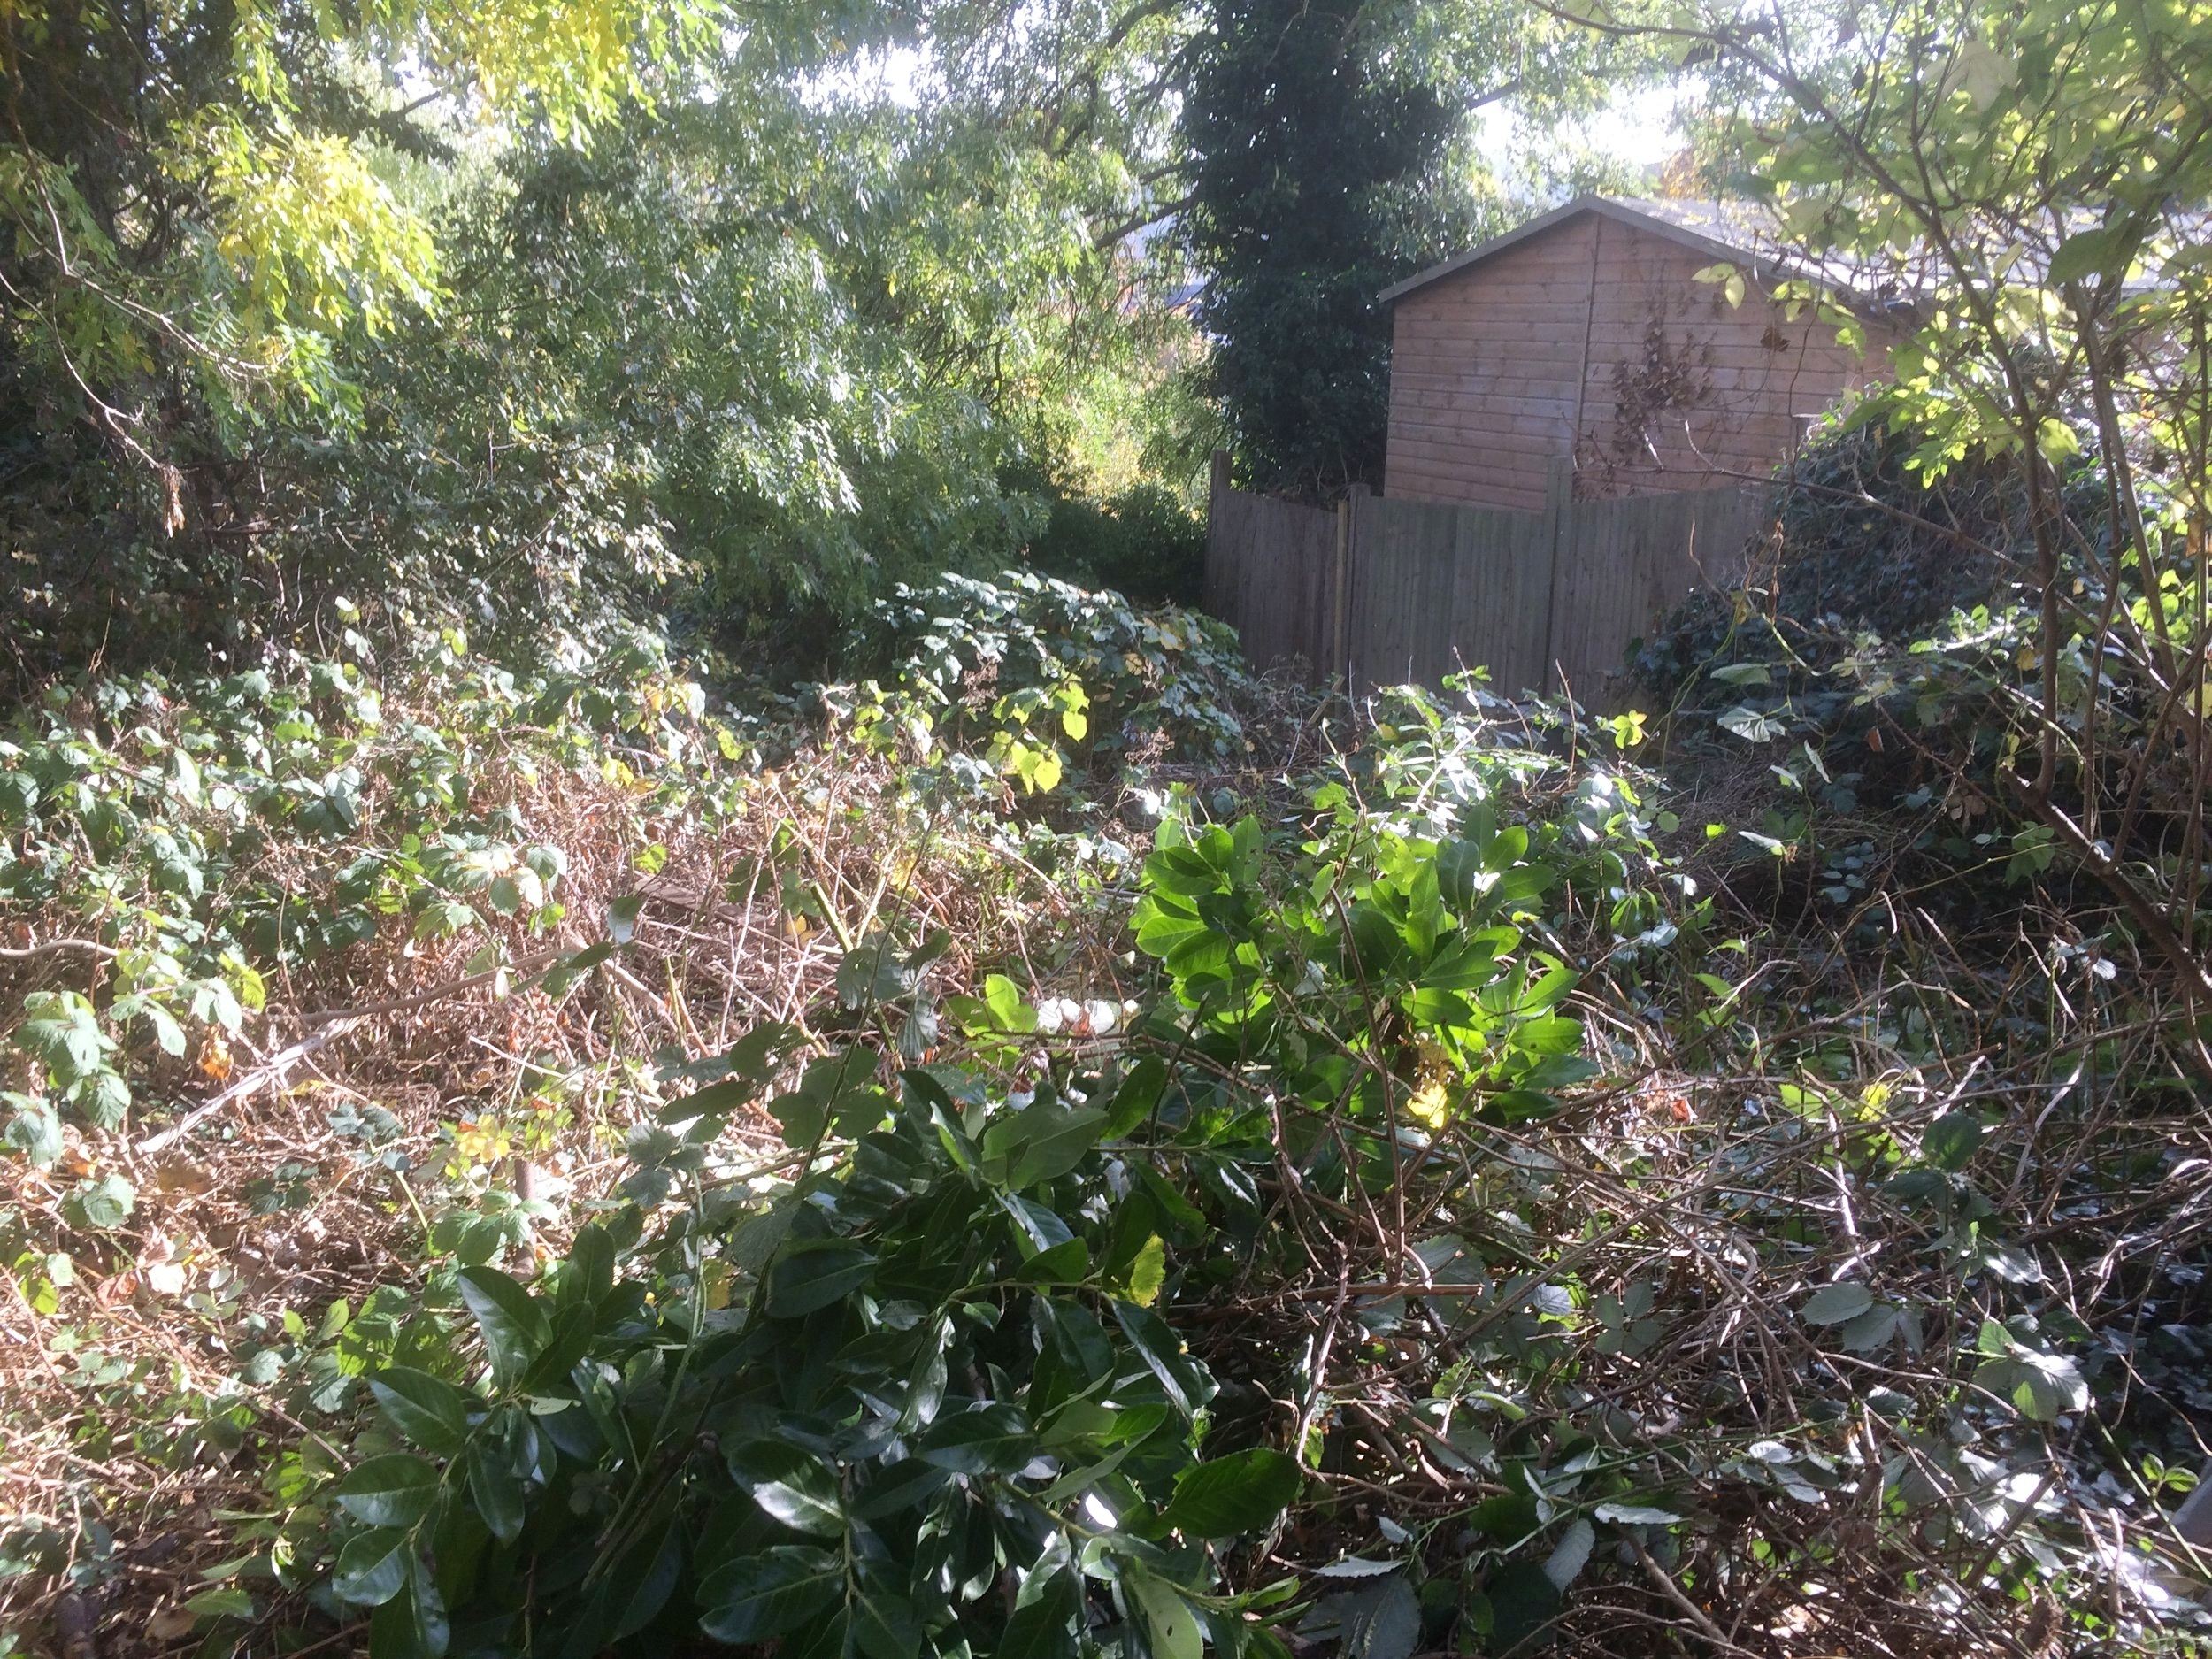 Permaculture volunteering opportunity south london